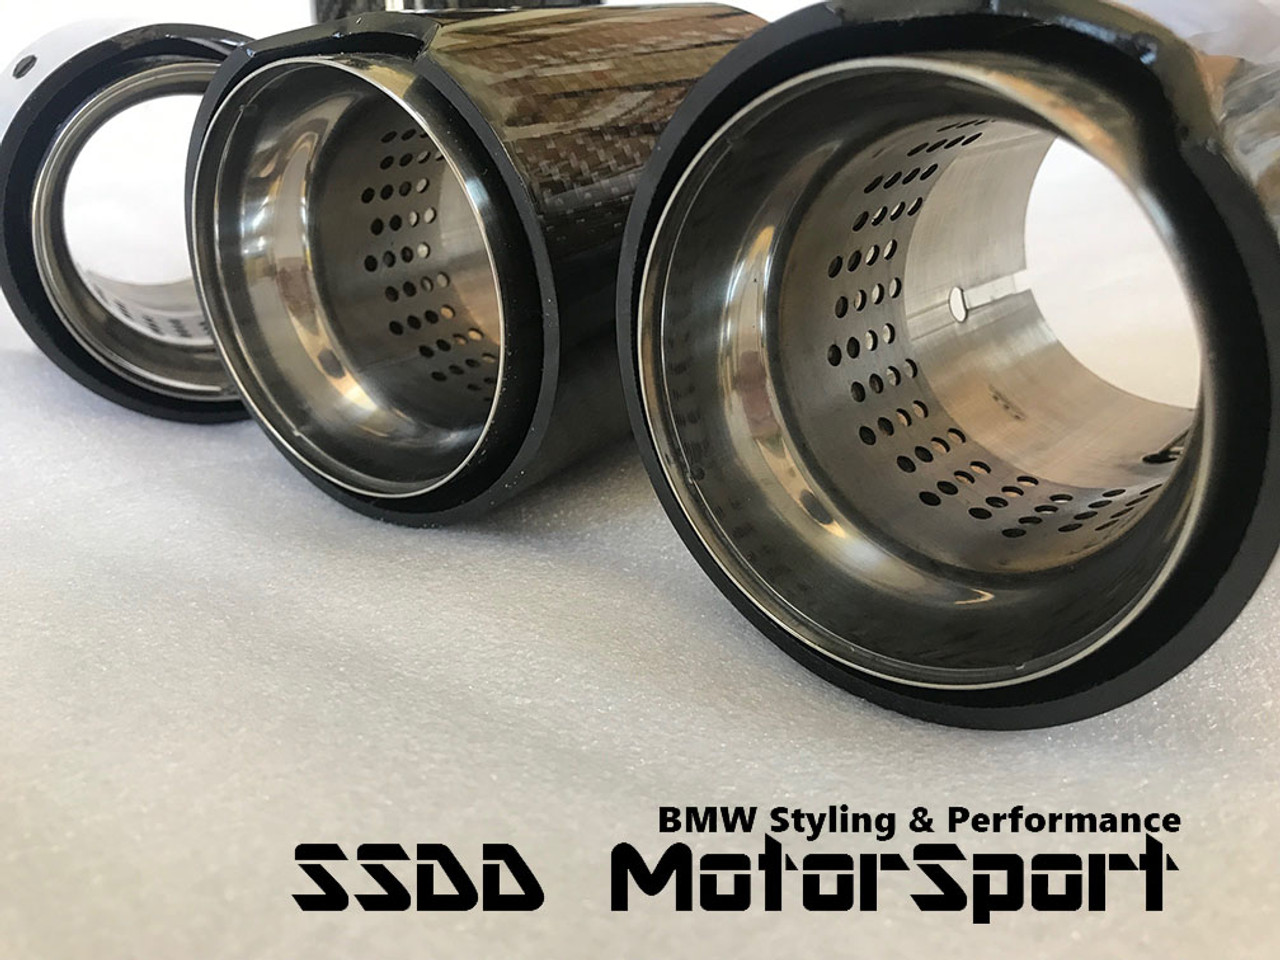 Carbon Fibre Perforated Exhaust Tips for BMW FX M2, M3, M4, M5, and M6    Carbon Fibre & Stainless Steel